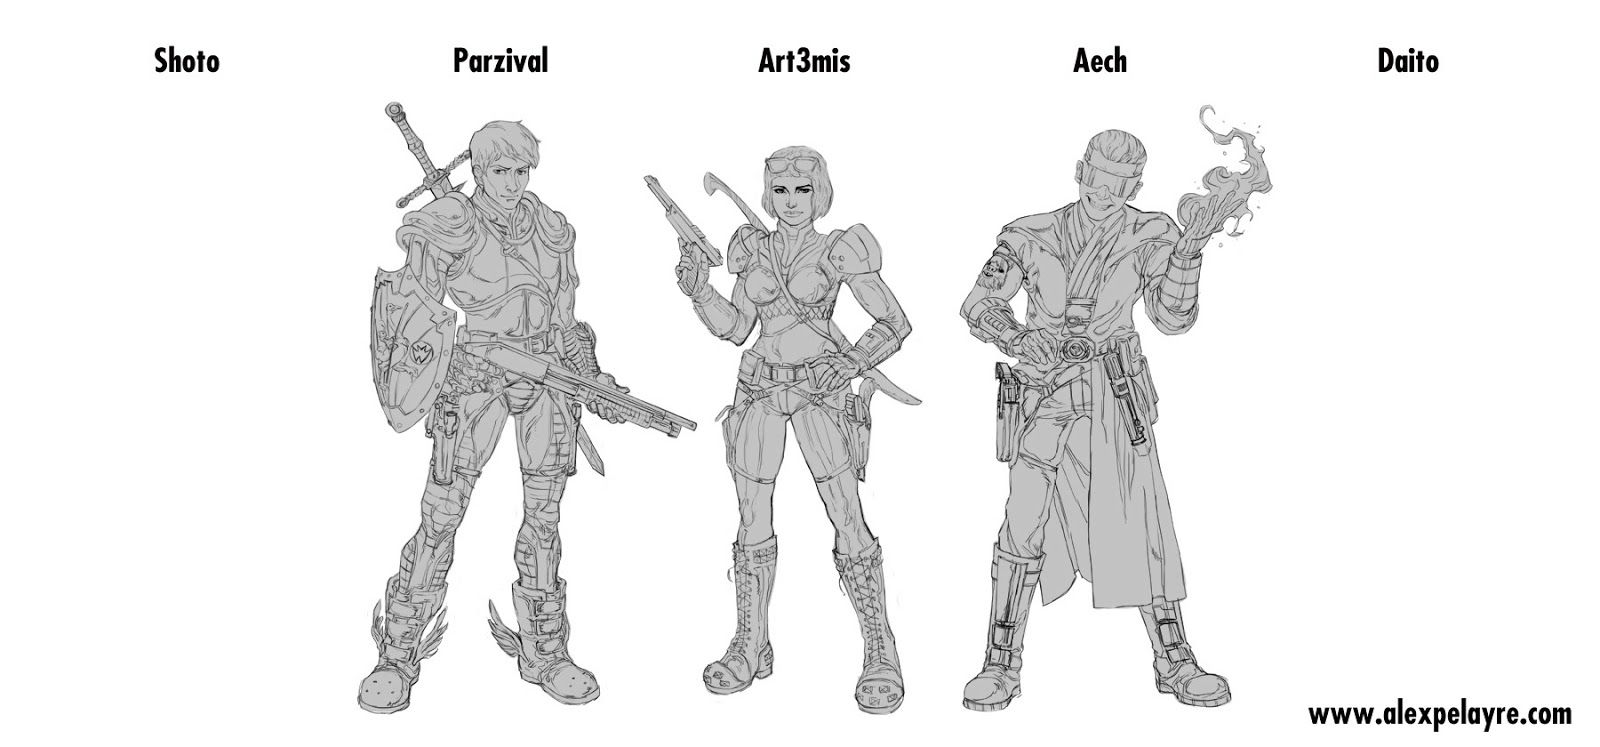 Characters from Ready Player One (Parzival, Art3emis, Aech